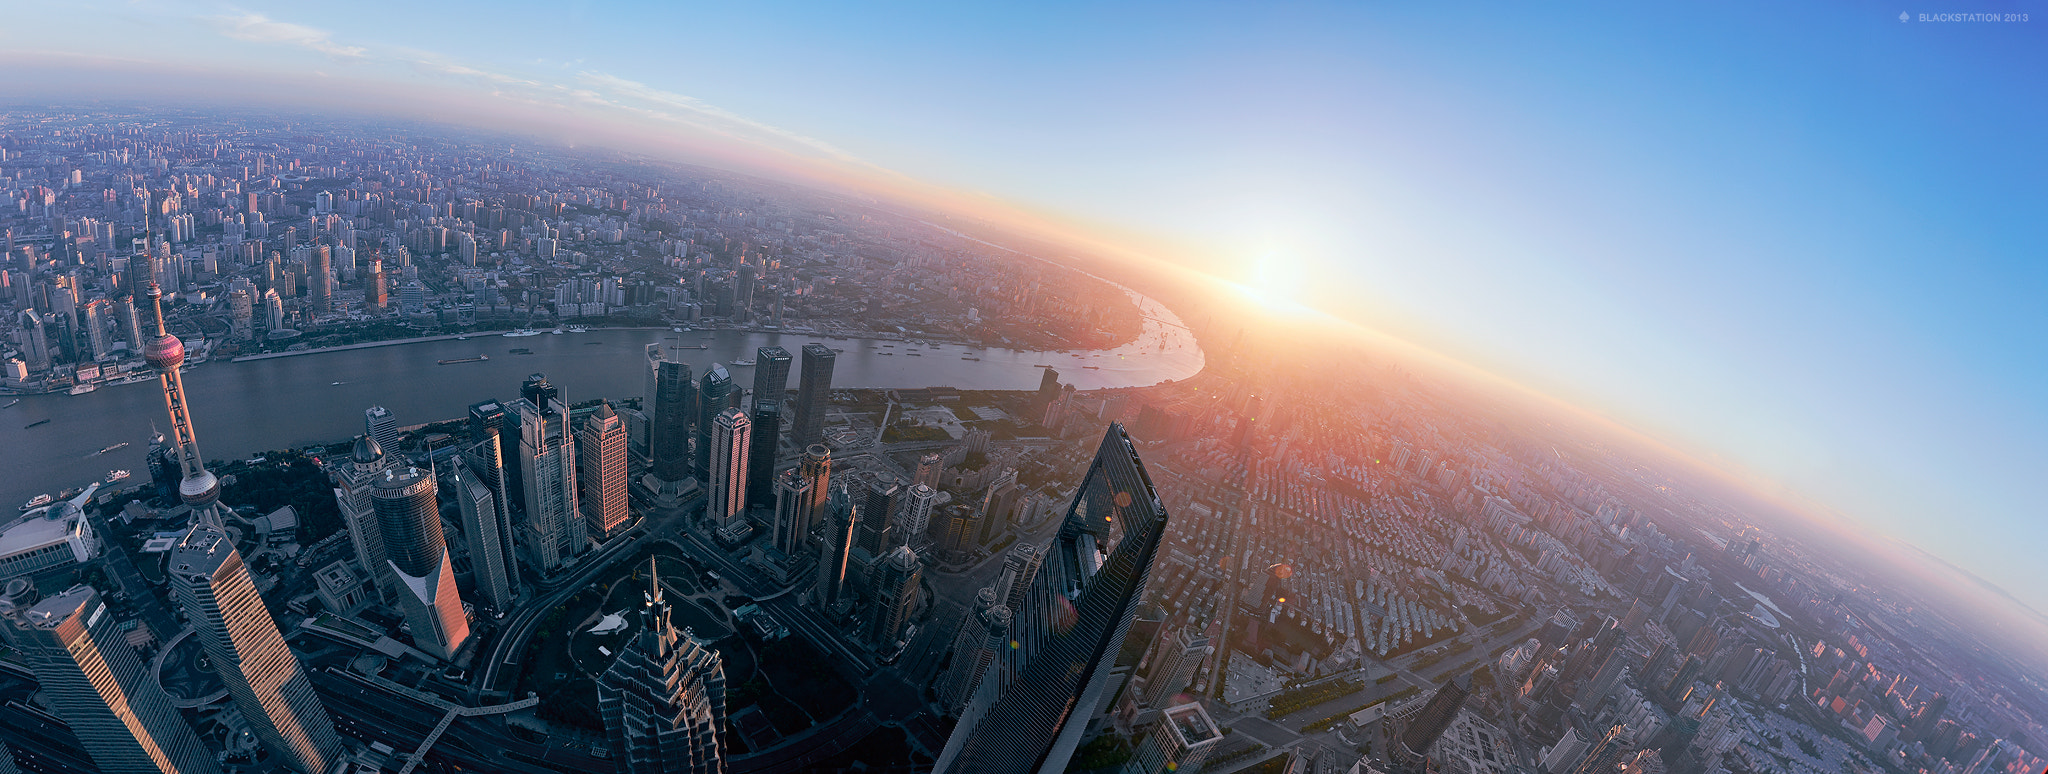 Photograph the Shanghai Planet by Black Station on 500px